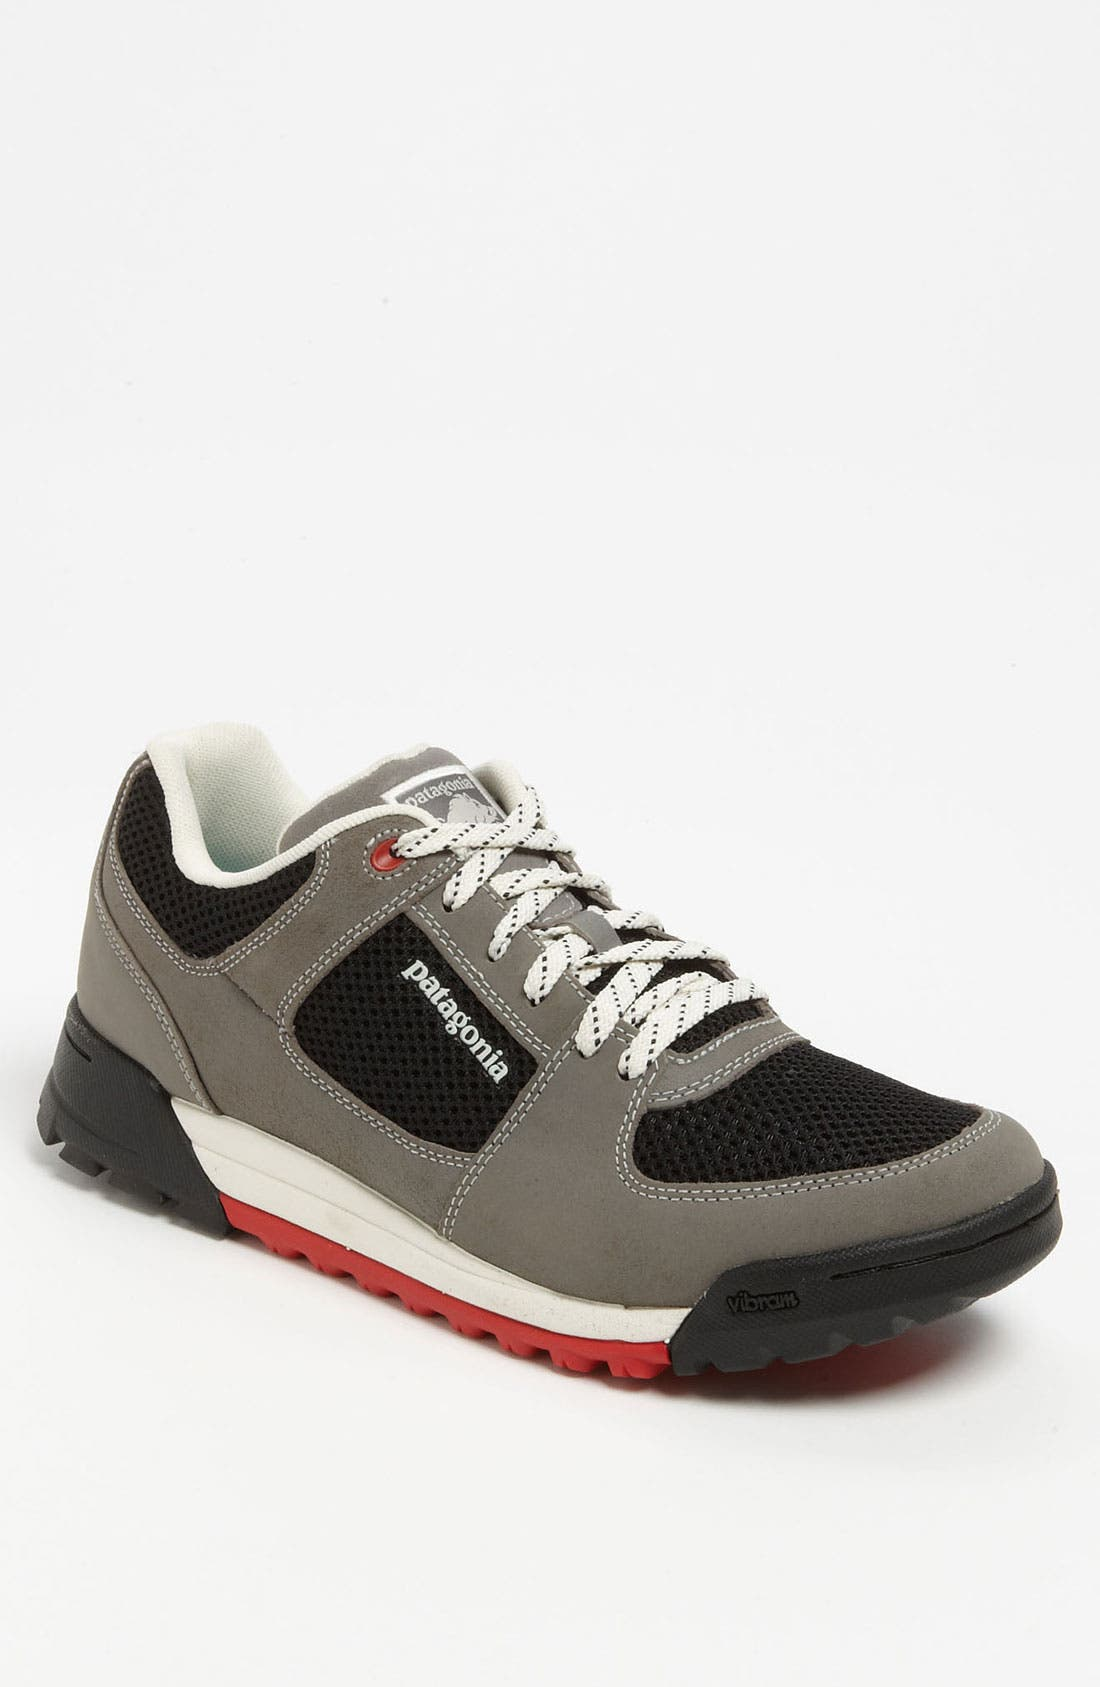 Main Image - Patagonia 'Javelina AC' Walking Shoe (Men) (Online Only)